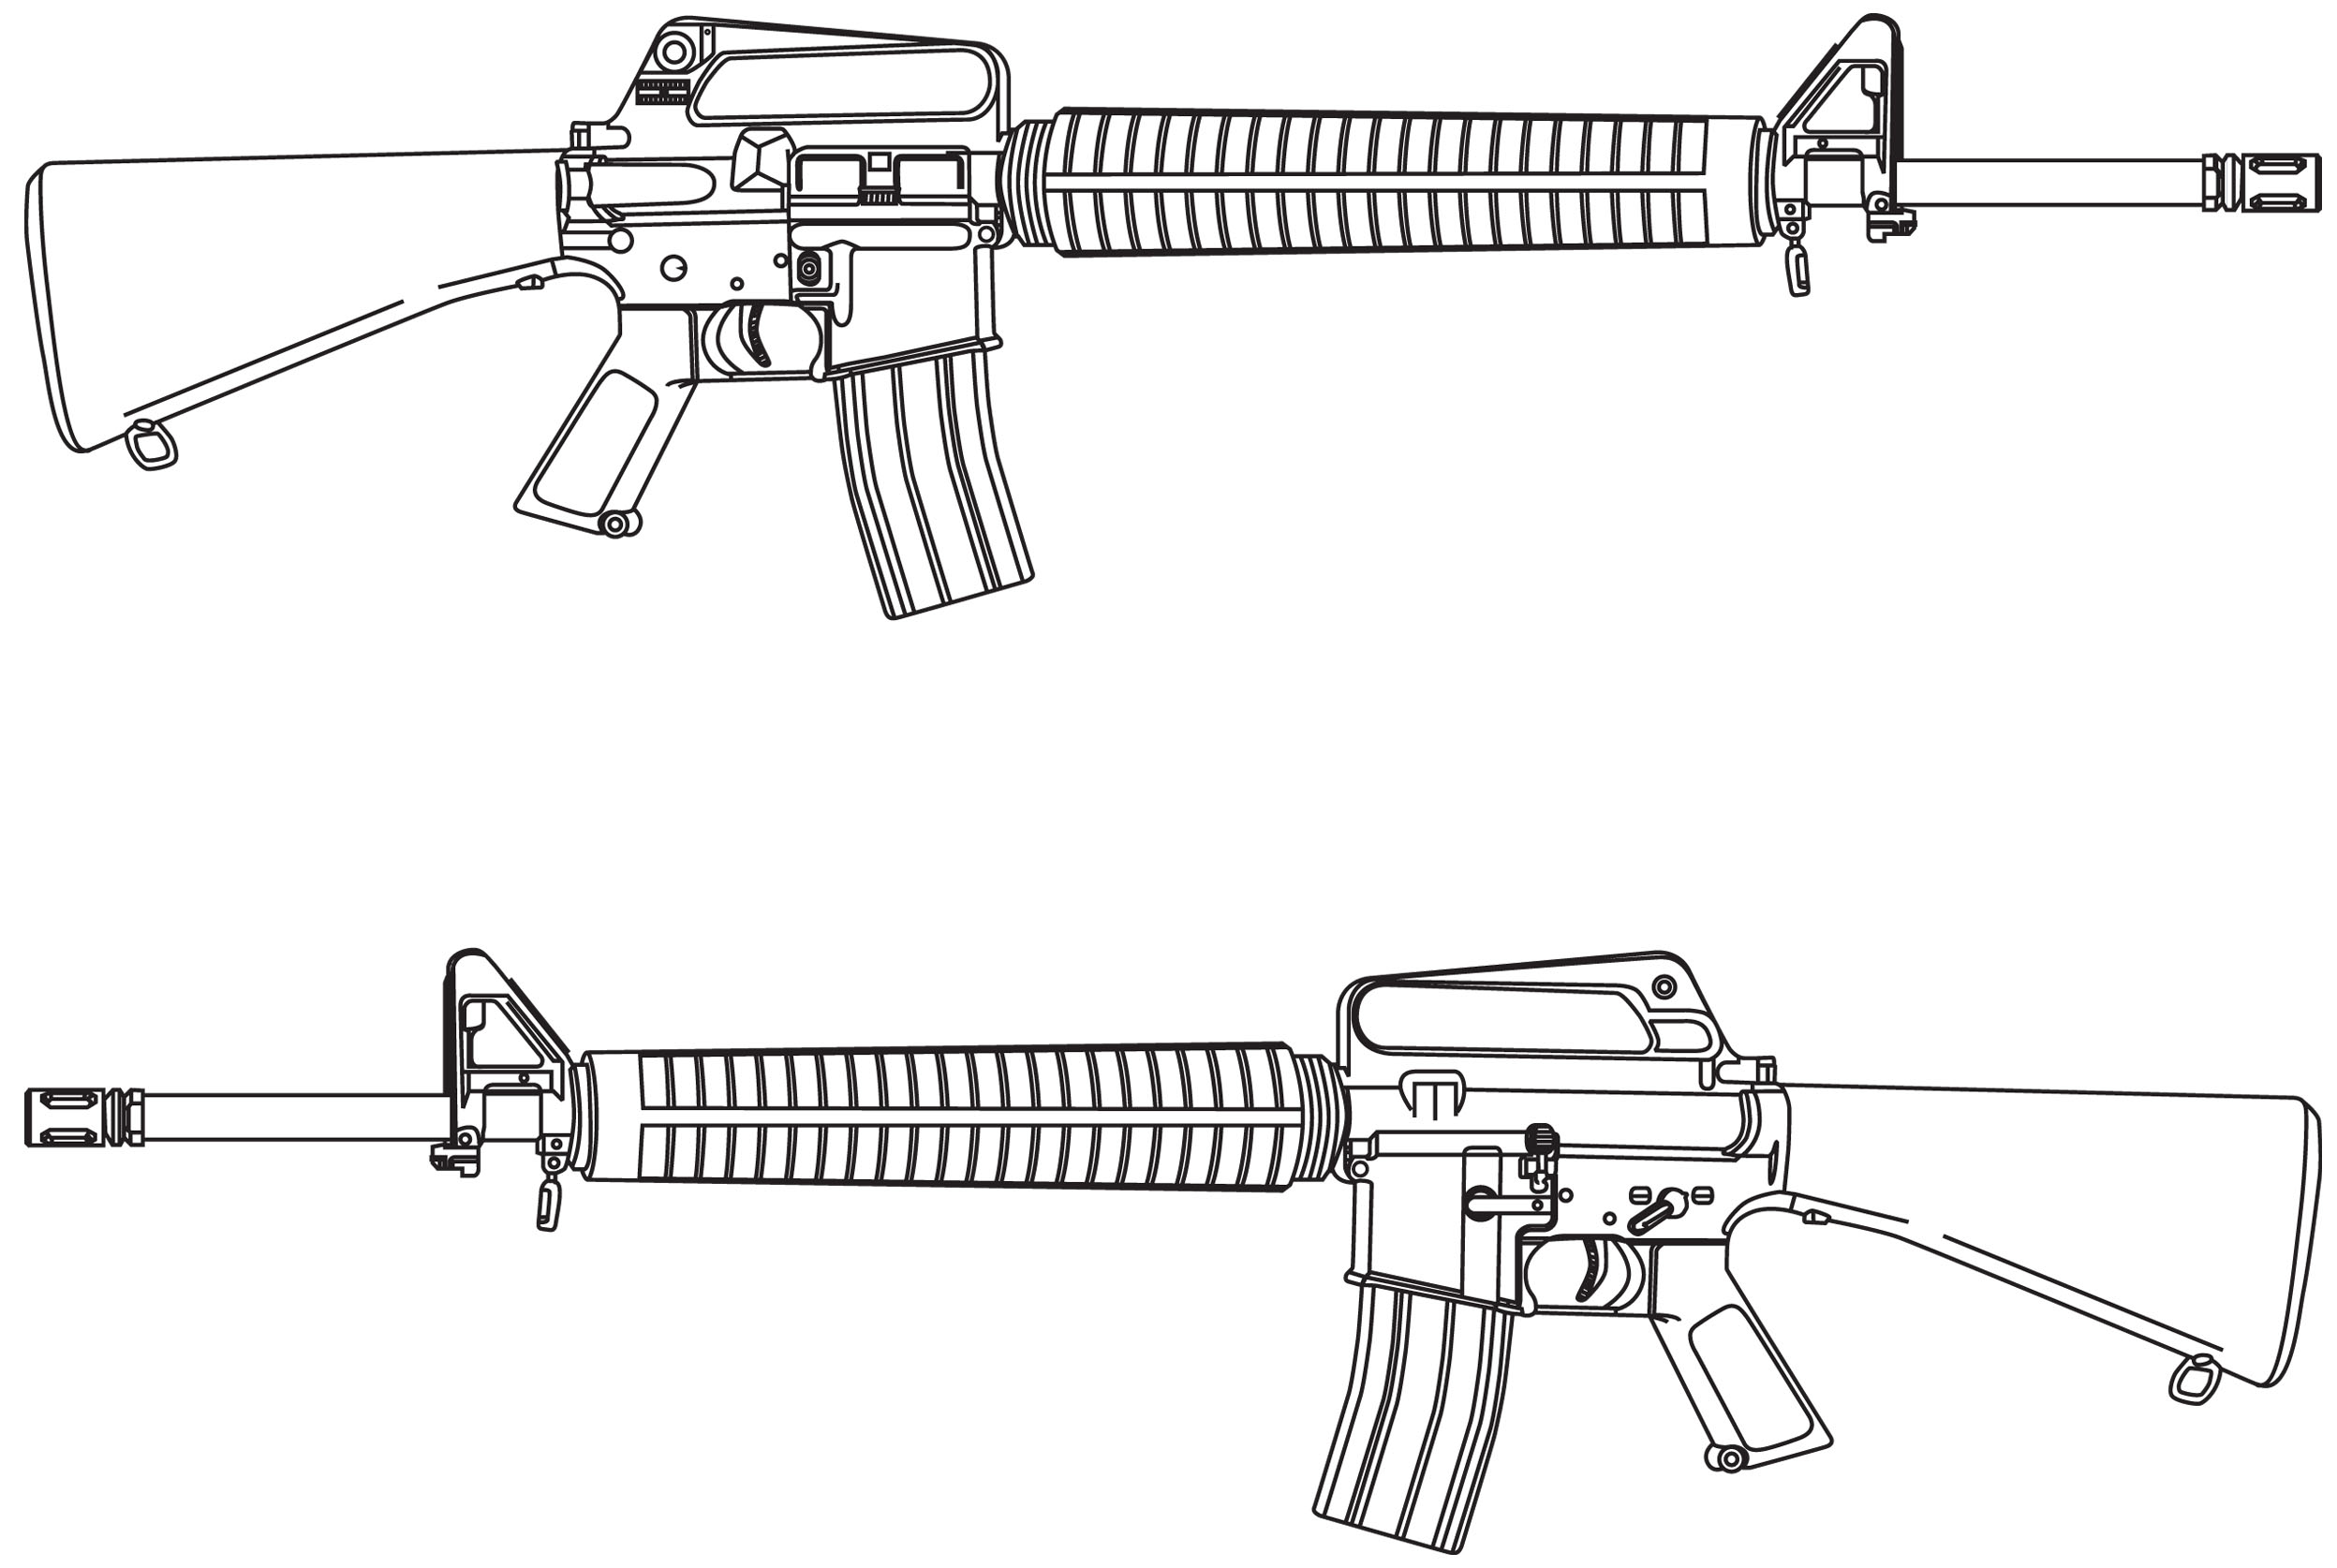 File:m16a2 Rifle Line Drawingg